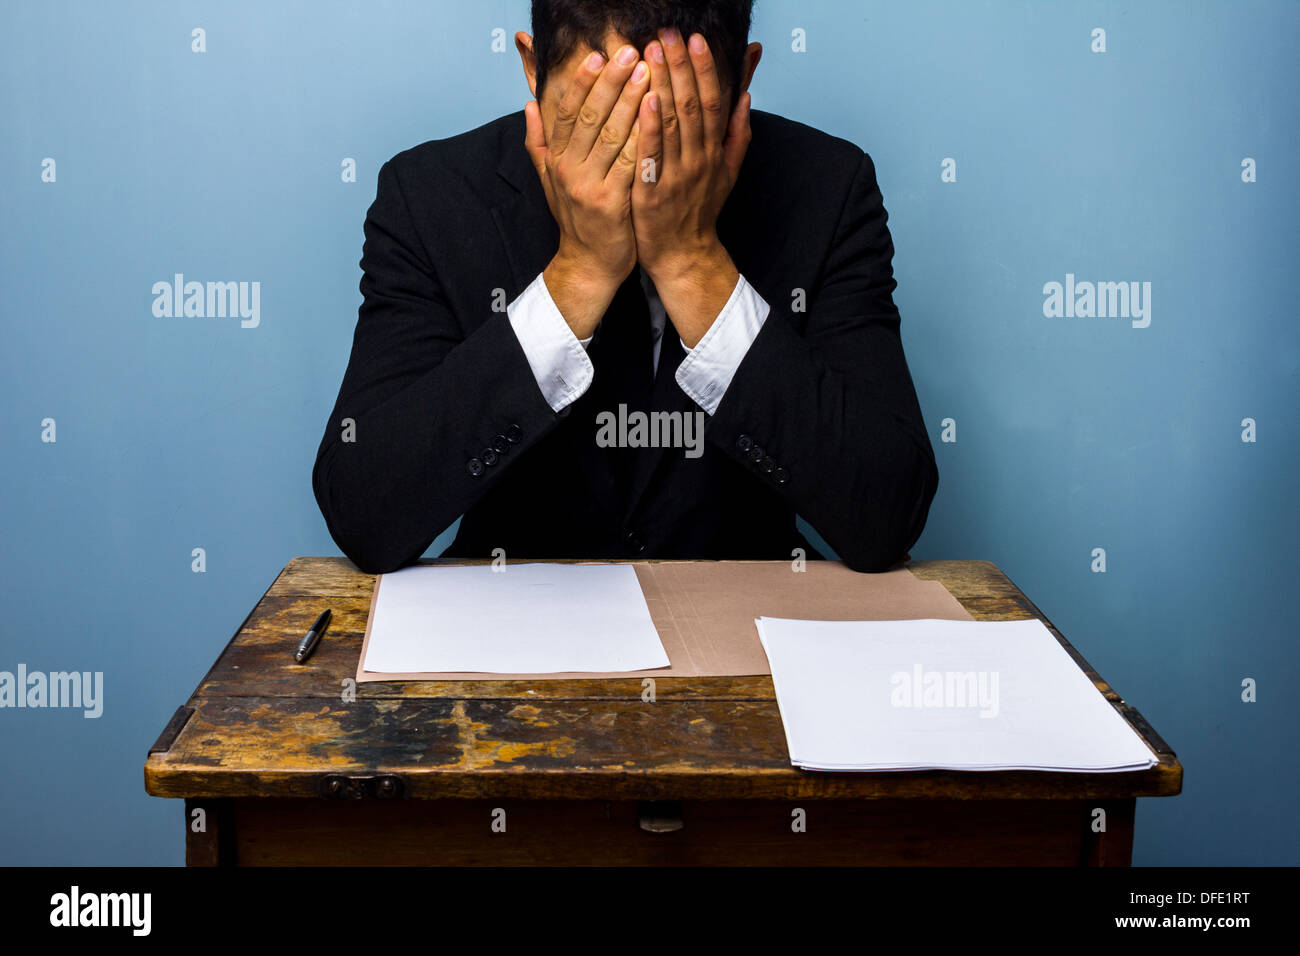 Tired and frustrated businessman with important documents - Stock Image